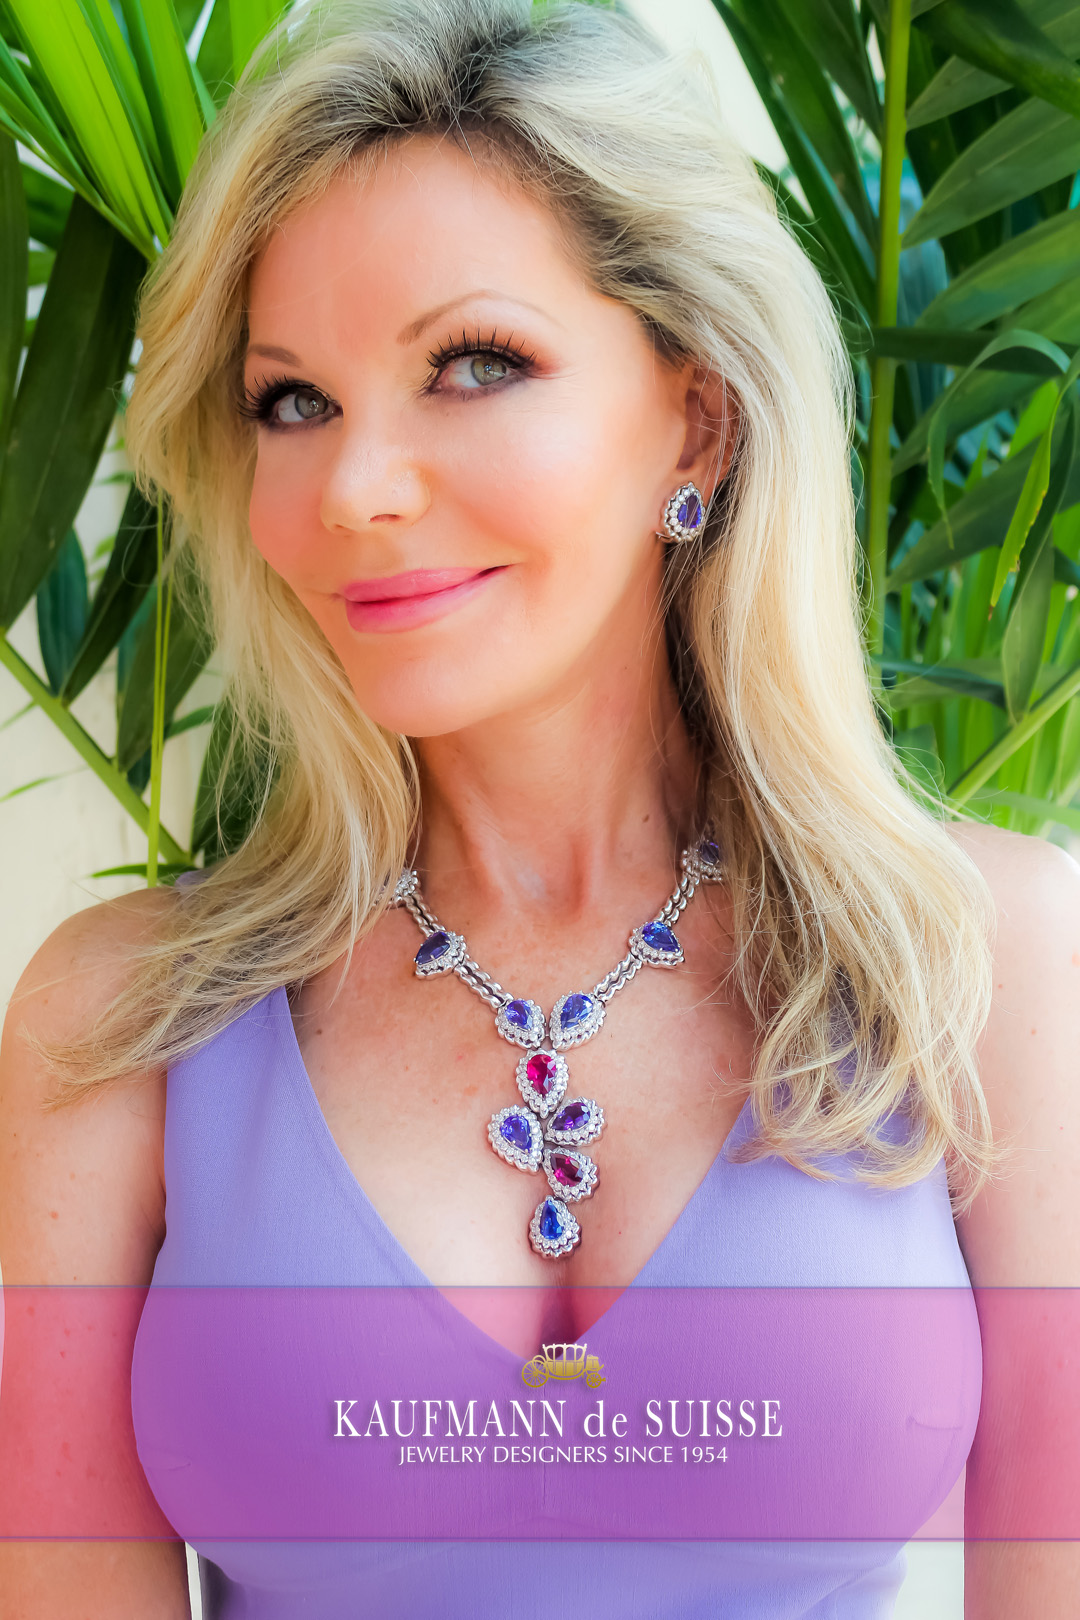 18K White Gold Necklace with Tanzanites, Rubellite and Amethyst